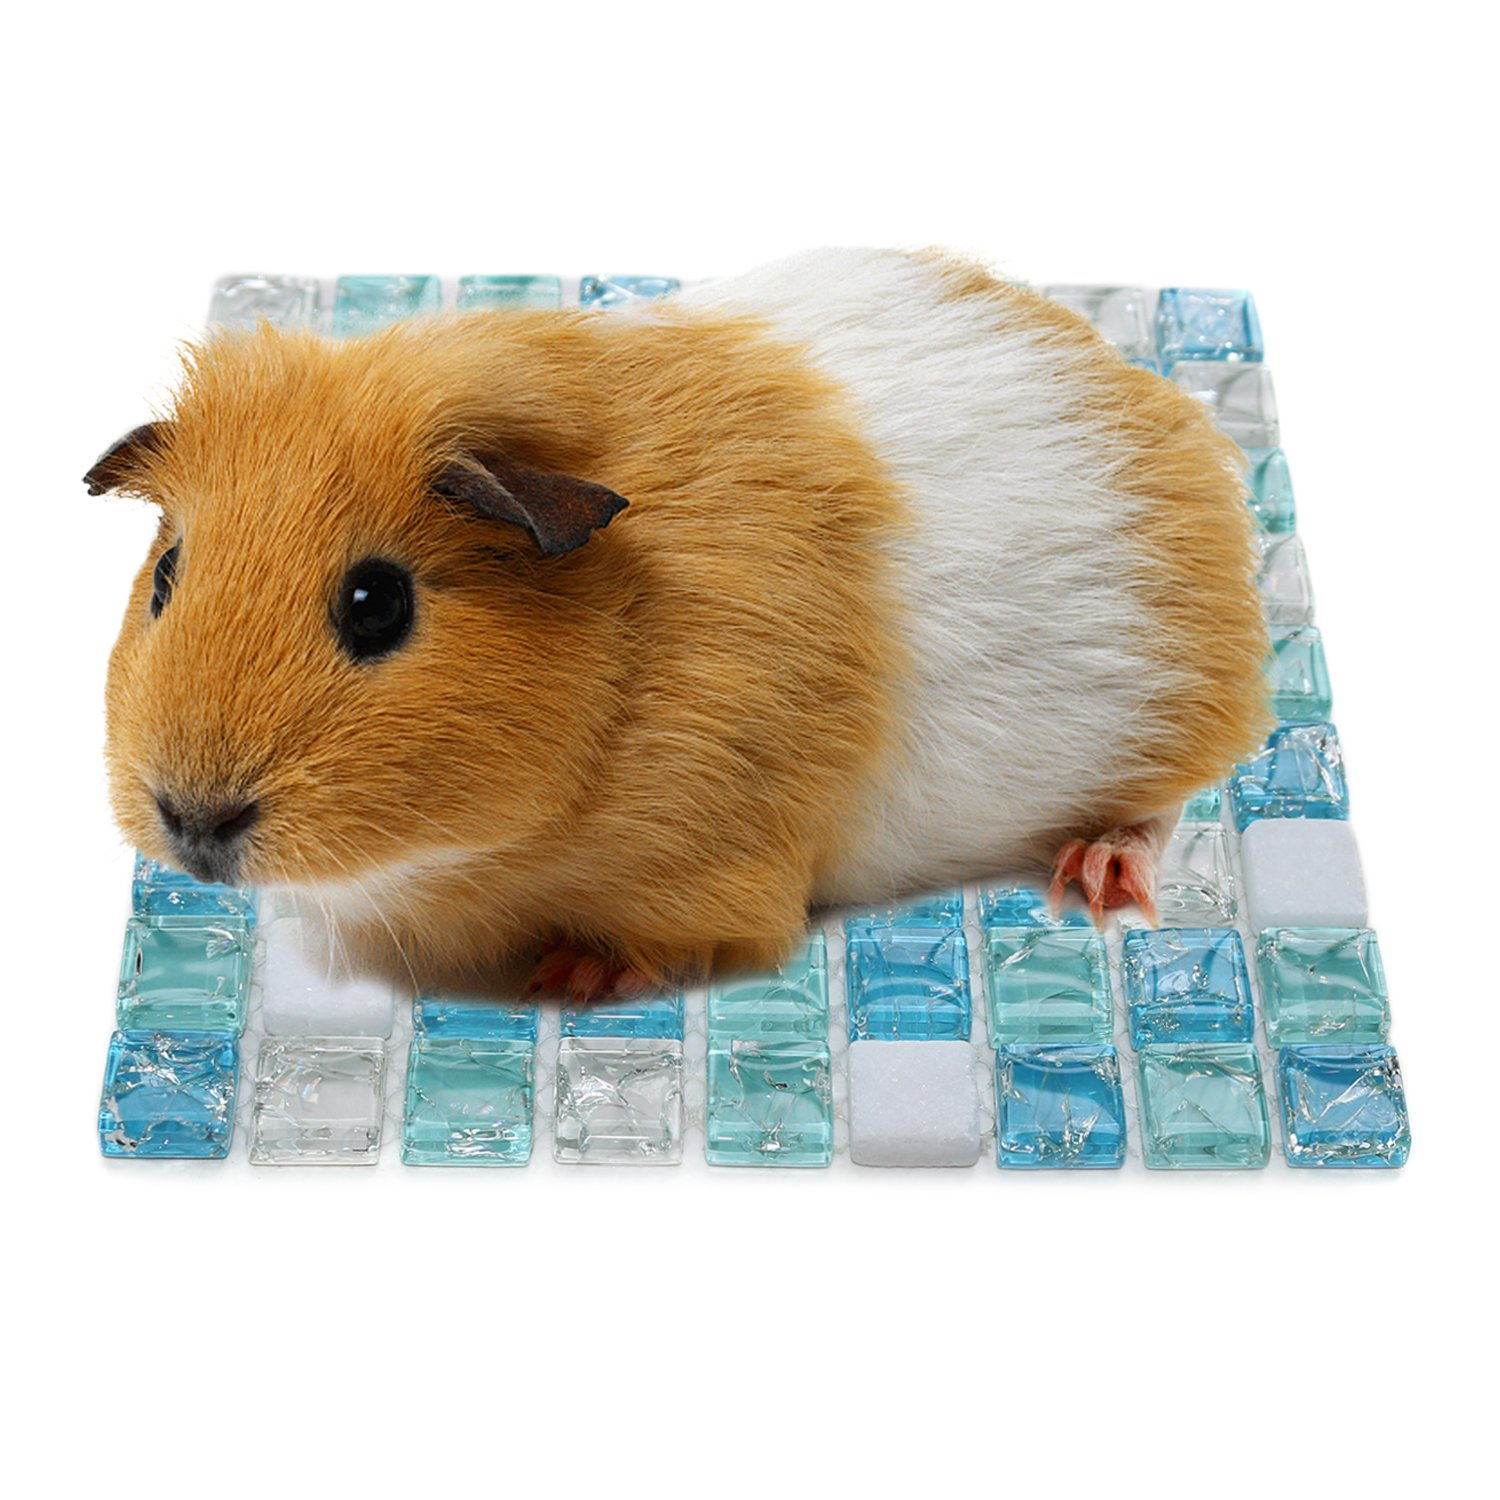 RYPET Hamster Cooling Mat - Crystal Marble Pet Cooling Pad for Hedgehogs, Guinea Pig, Hamster, Rats and Similar Small Animals S